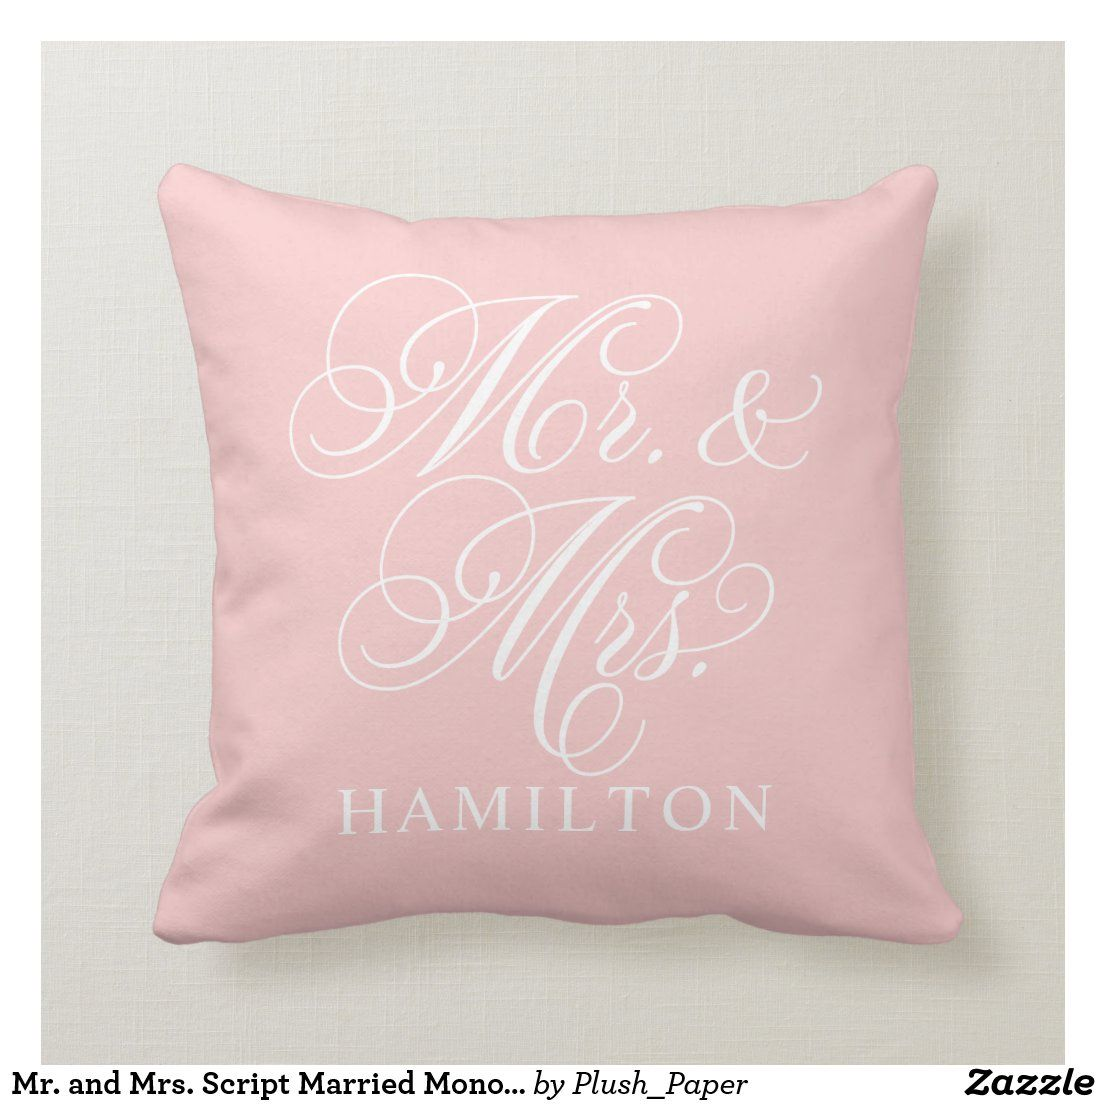 Mr. and Mrs. Script Married Monogram Pink Throw Pillow | Zazzle.com